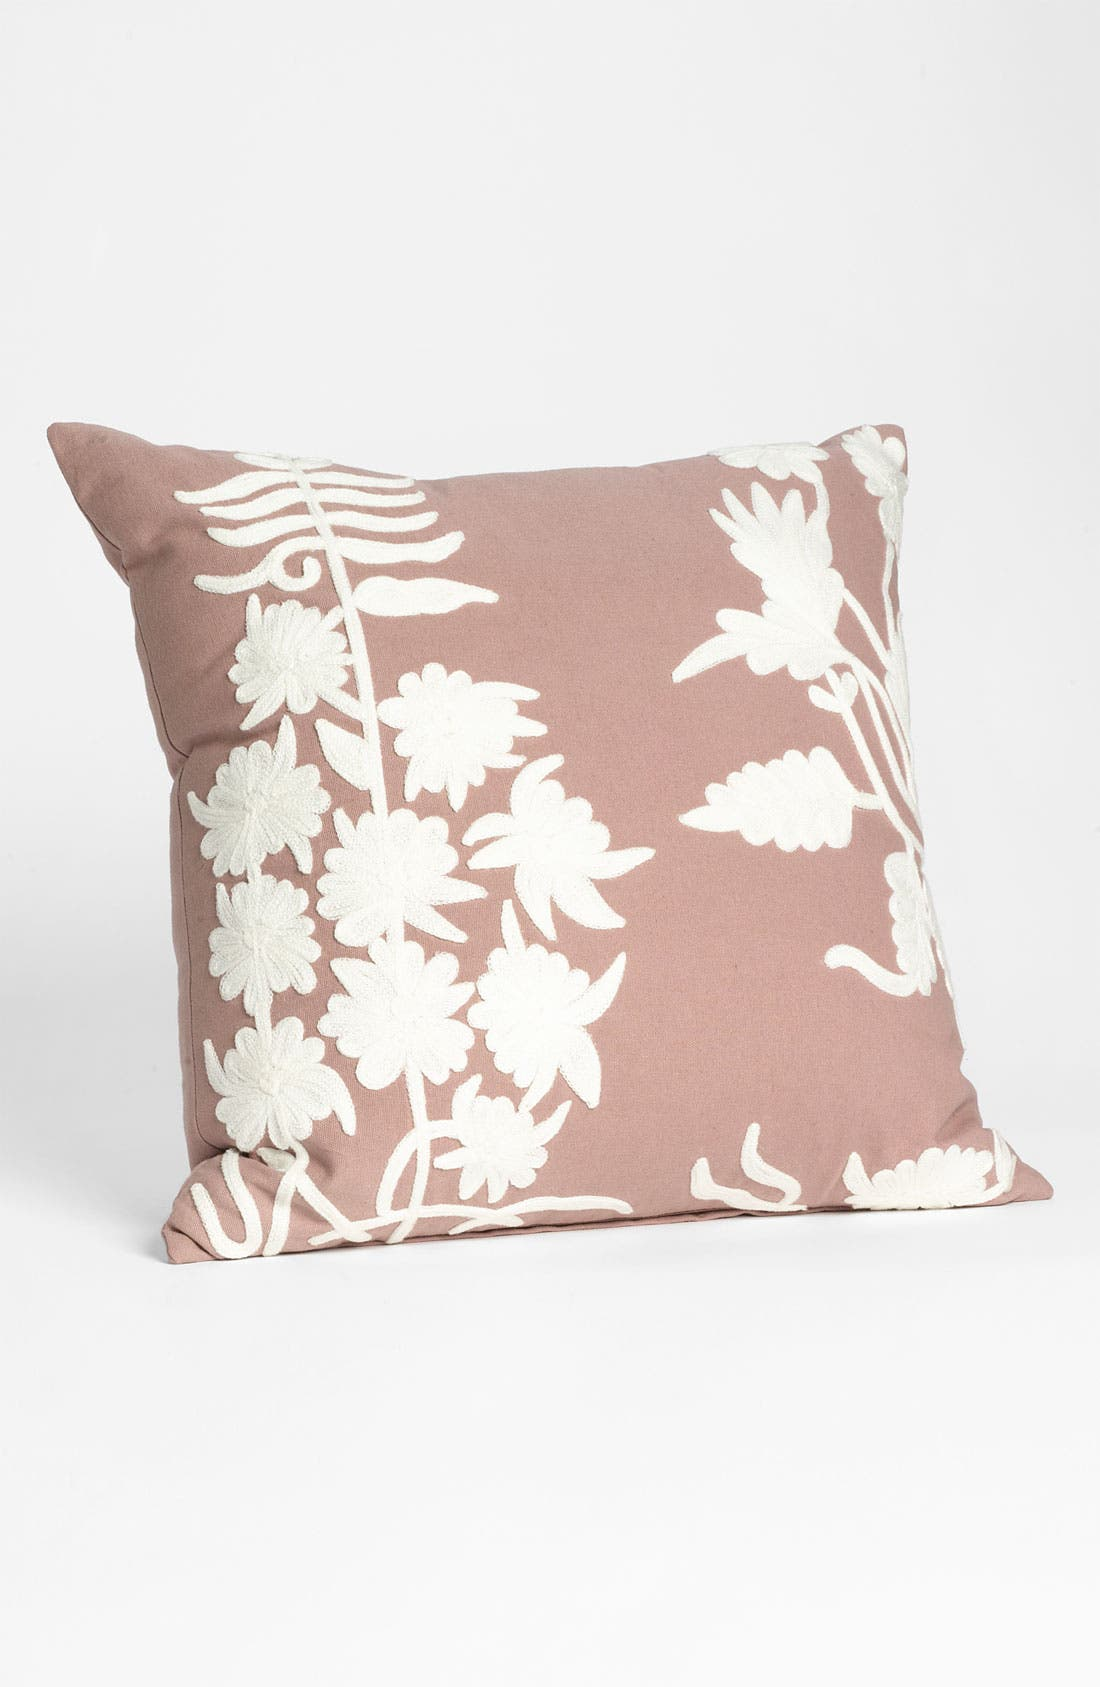 Alternate Image 1 Selected - Mina Victory Floral Crewel Pillow